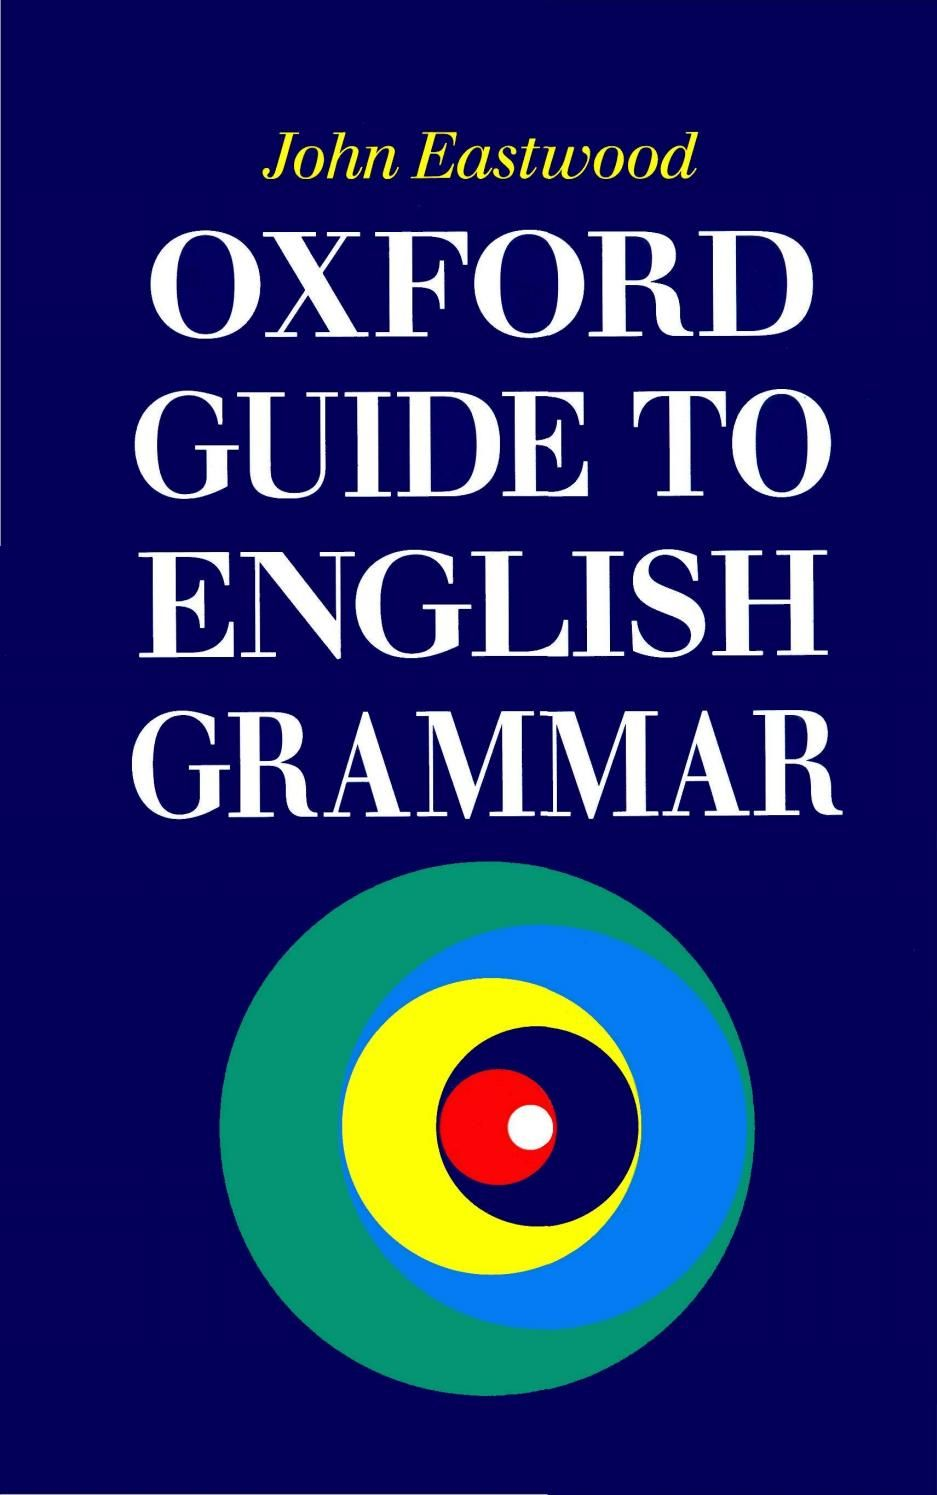 Workbooks english grammar workbook for dummies pdf free download : Download free 6 essential English grammar books from here ... | E ...